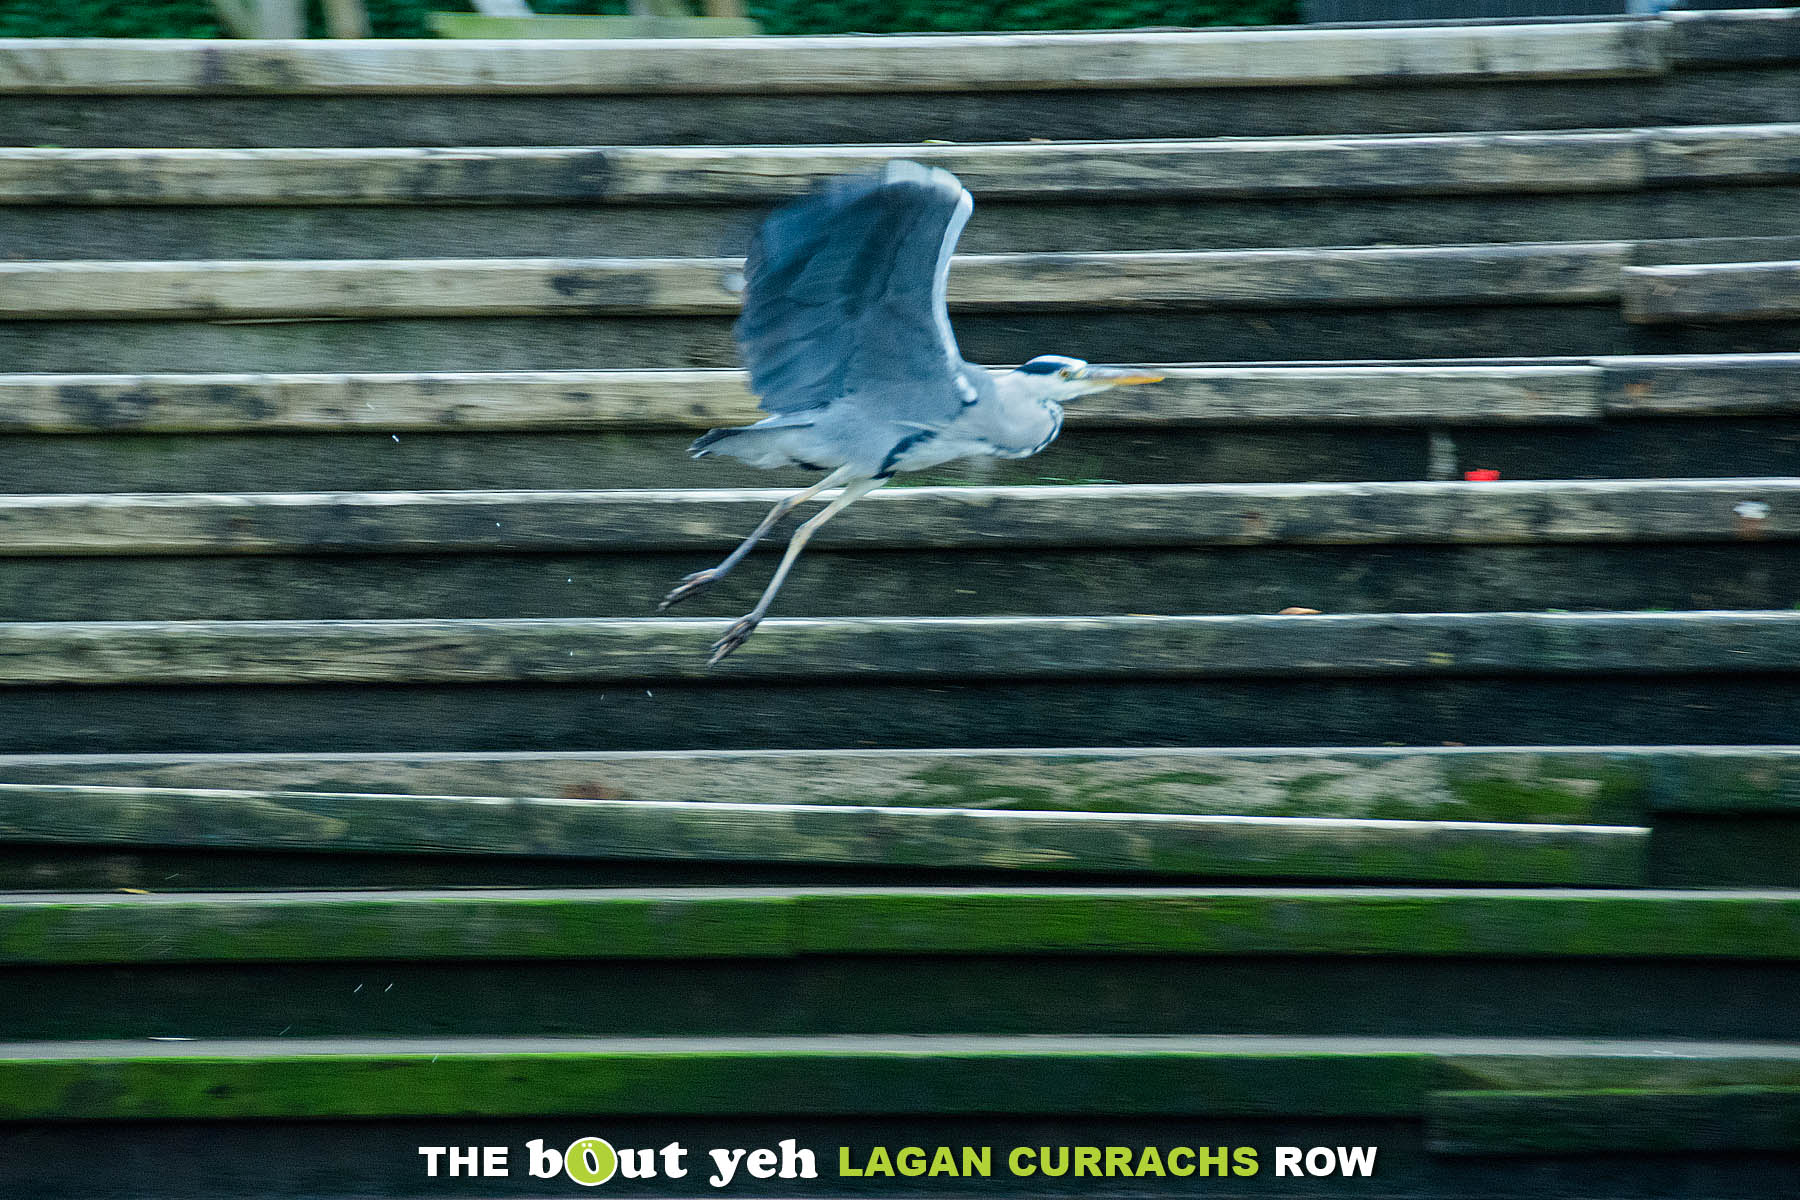 A heron takes to the air. As seen from the Bout Yeh Lagan Currachs row - photo 9235.